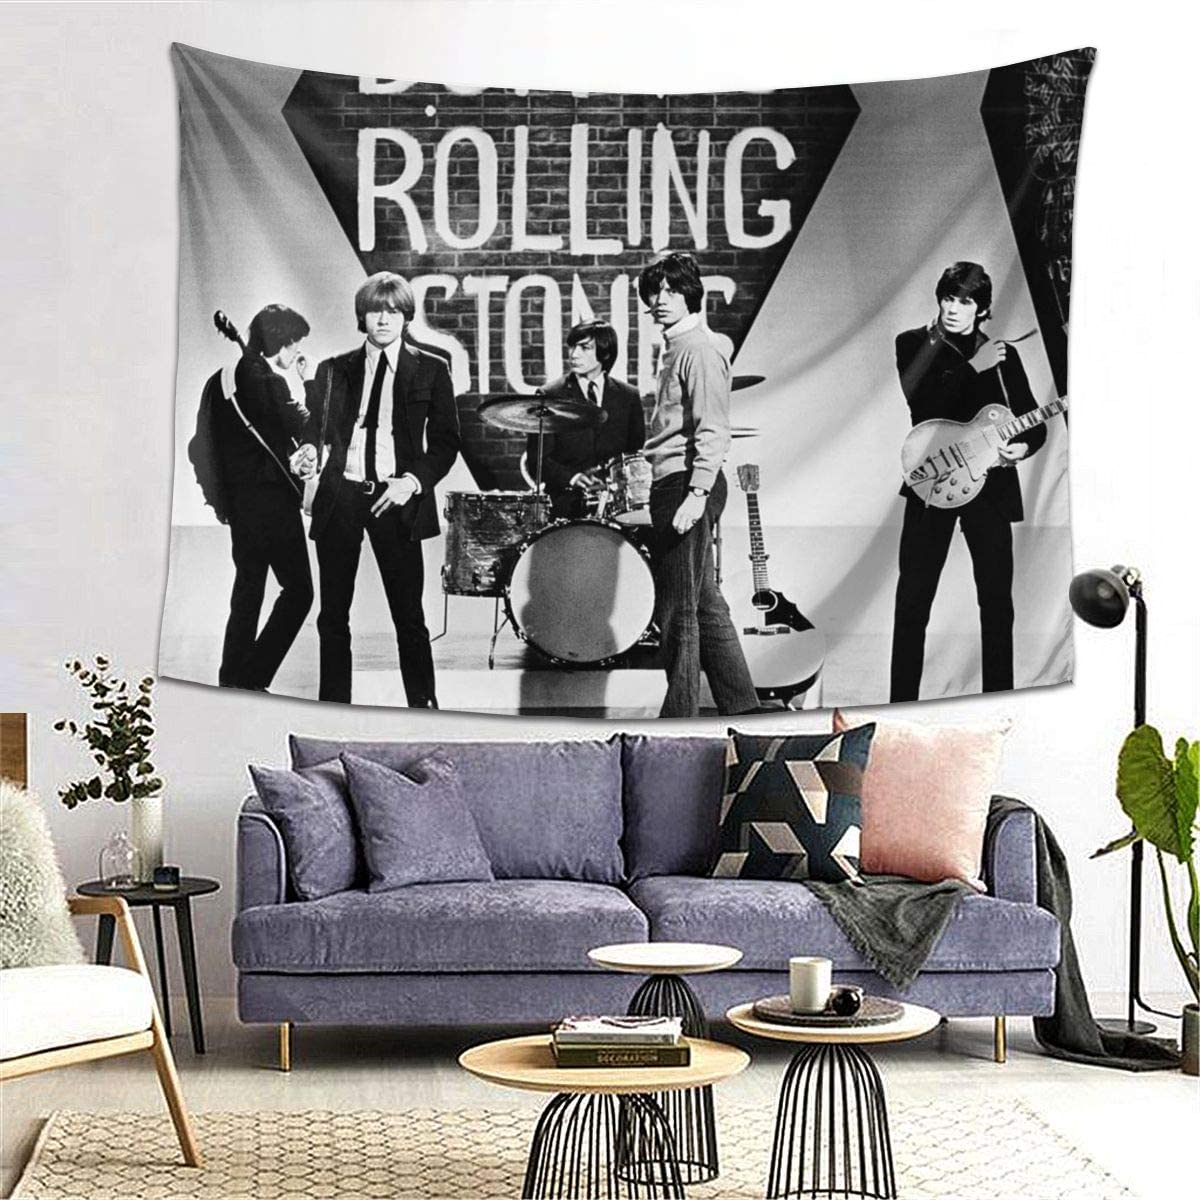 Large Vintage Rock Band Wall Tapestry Stones Hanging Poster Music Tapestries Art Decoration for Office Living Room Bedroom Dorm, 80×60 Inches Grey